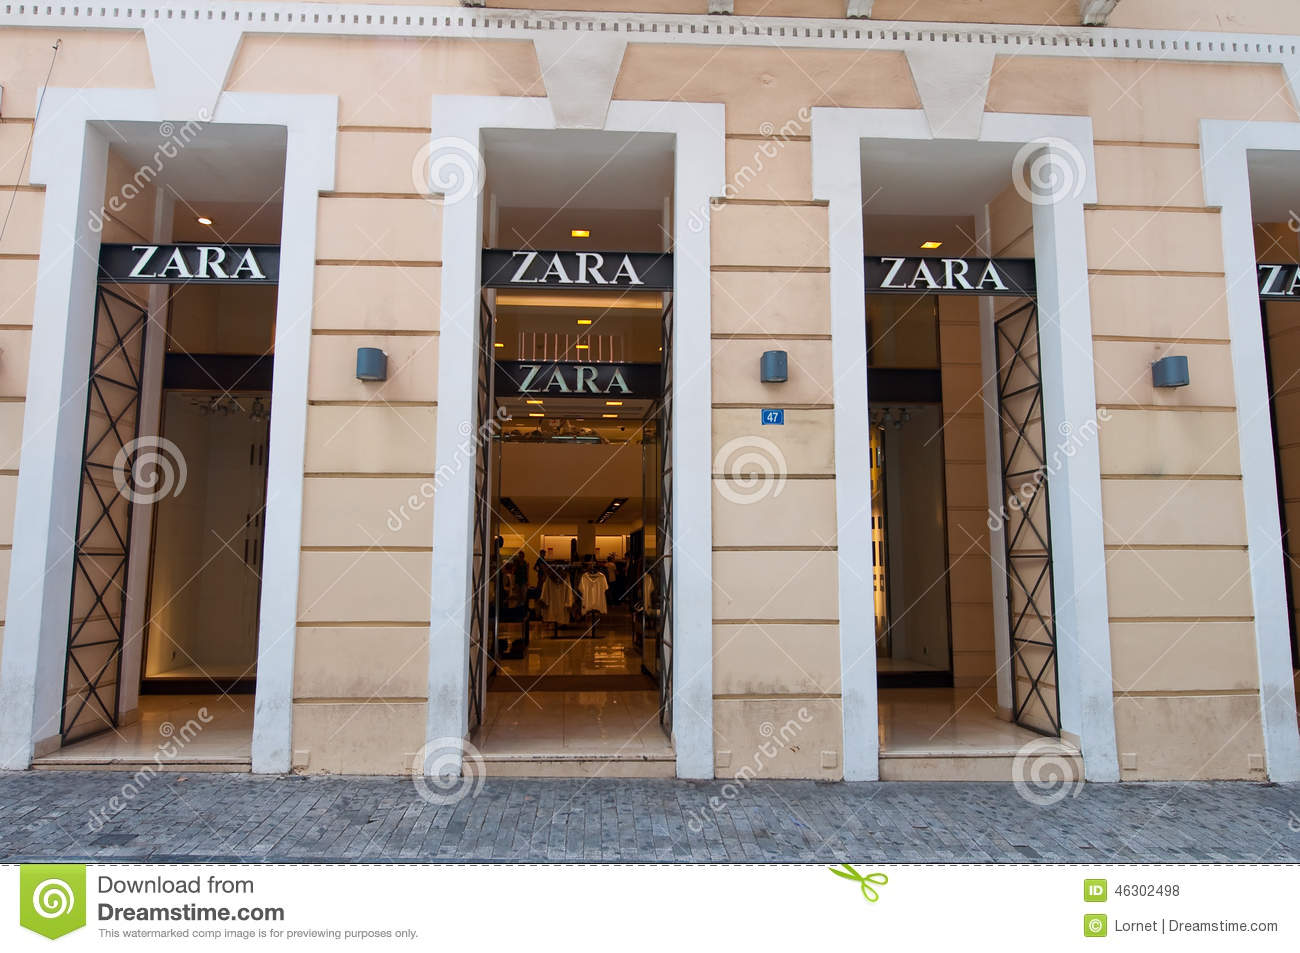 Spanish clothing store names. Clothes stores